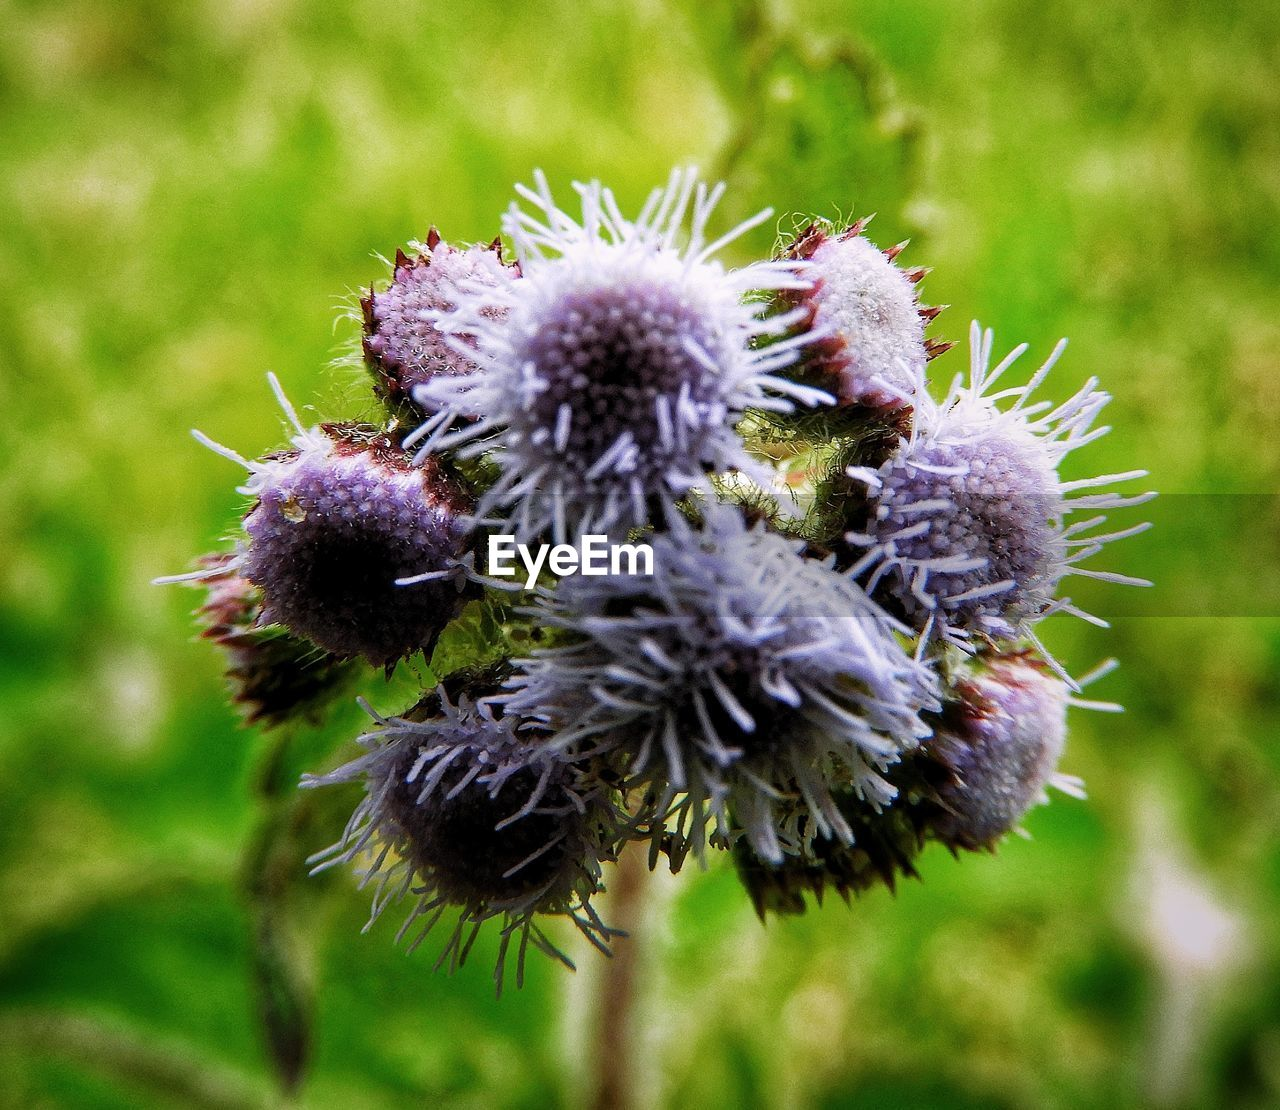 flowering plant, flower, plant, close-up, freshness, focus on foreground, vulnerability, fragility, beauty in nature, nature, day, growth, no people, flower head, inflorescence, land, outdoors, field, petal, thistle, purple, wilted plant